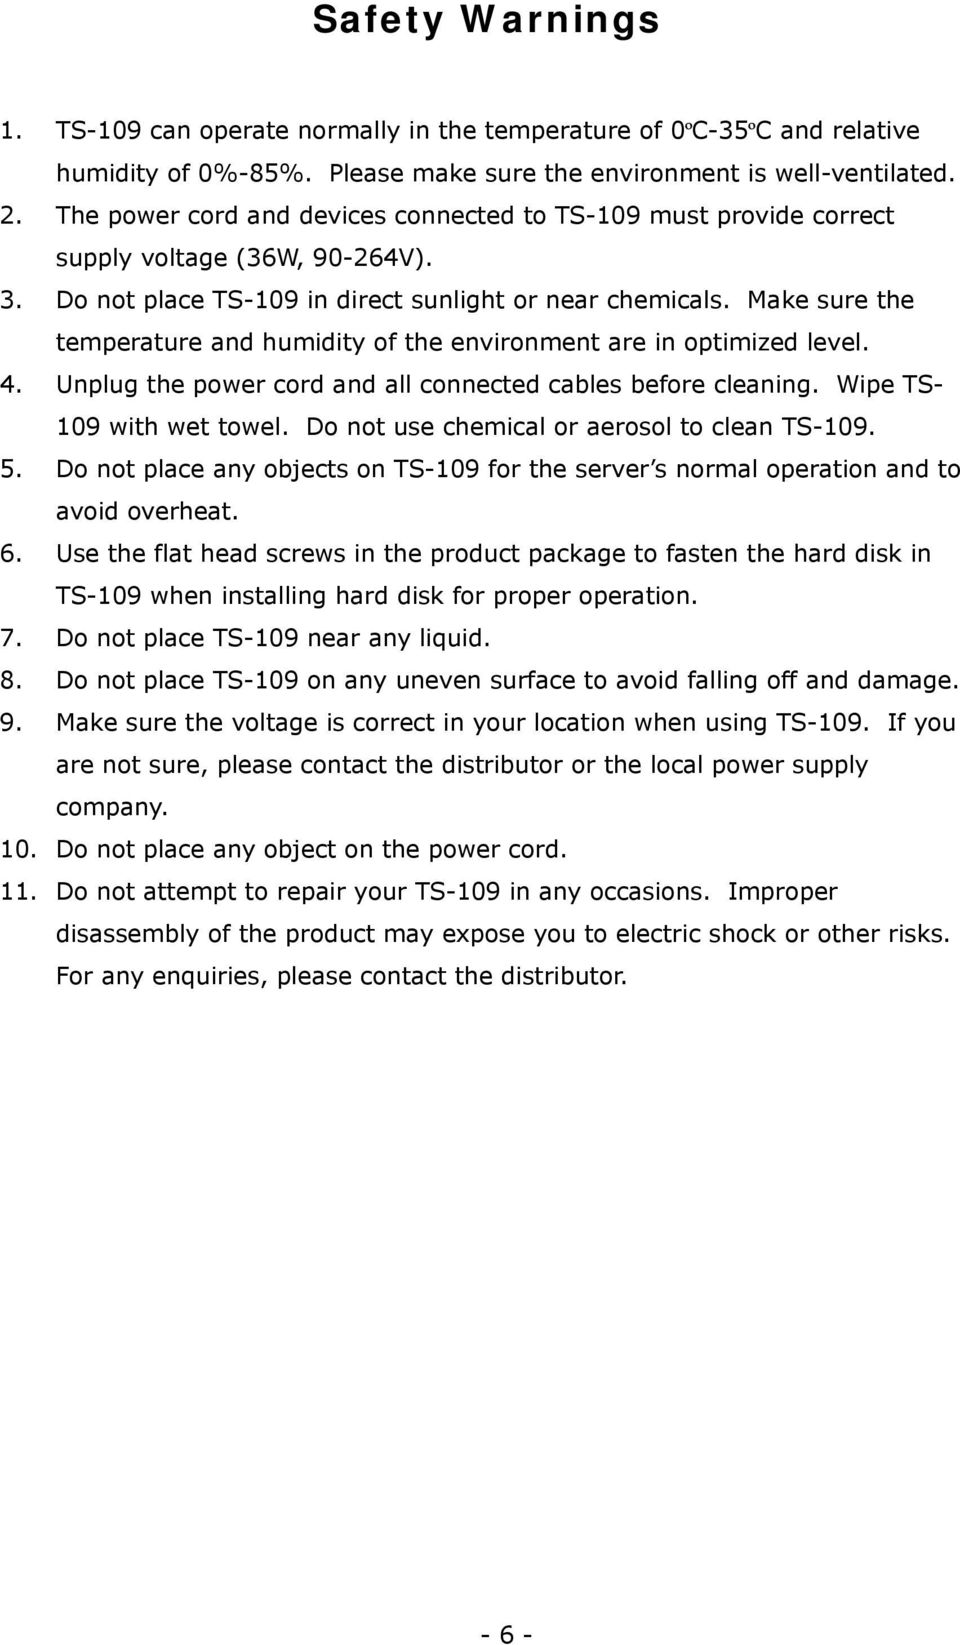 Make sure the temperature and humidity of the environment are in optimized level. 4. Unplug the power cord and all connected cables before cleaning. Wipe TS- 109 with wet towel.